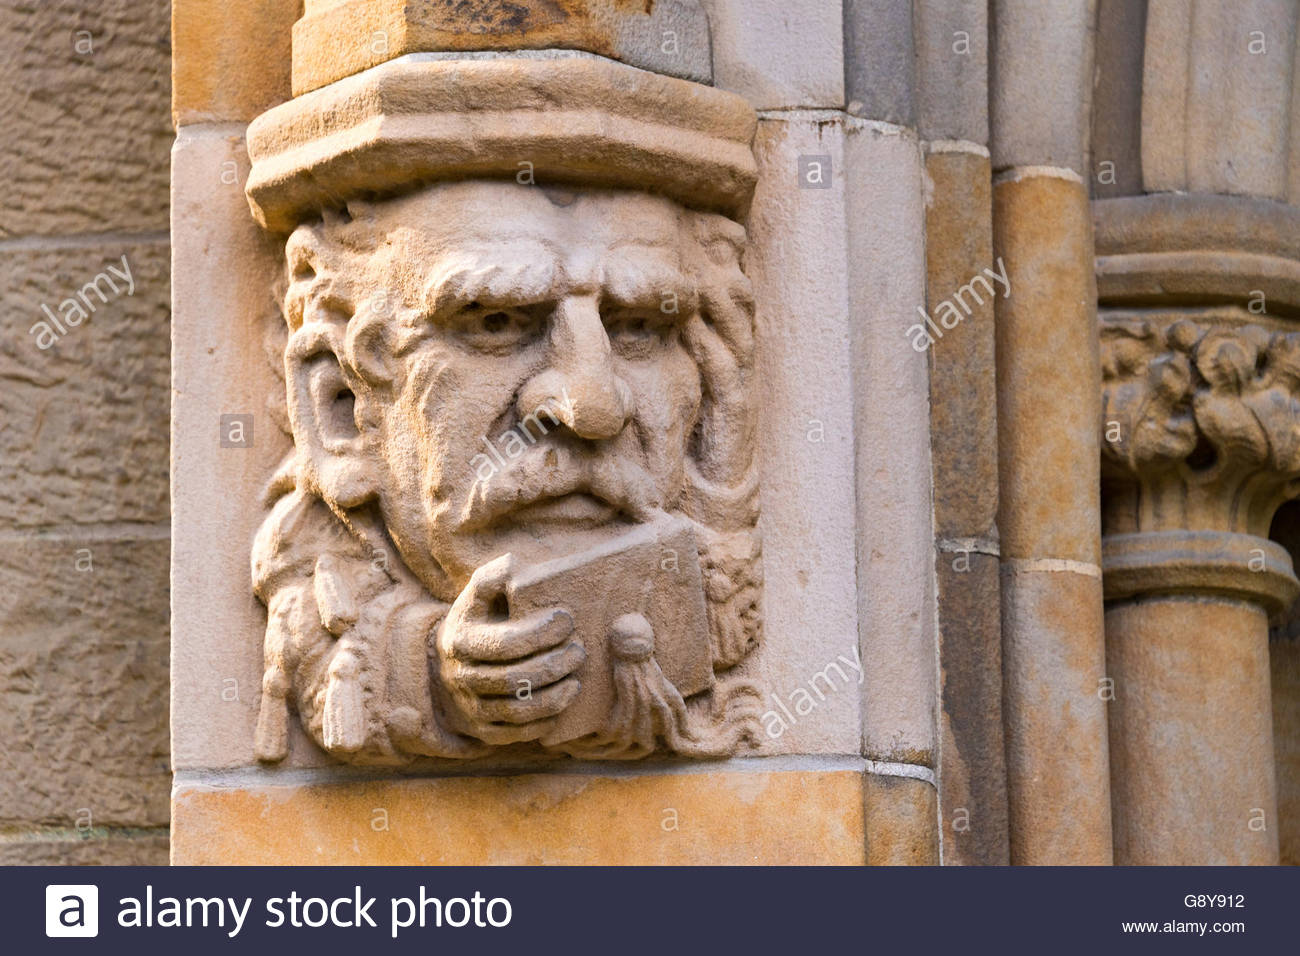 U Of T Or University Of Toronto: Trinity College, Hand Carved Gargoyles As  Decorative Architecture Design. The Landmark Features Jacobethan Tudor ...